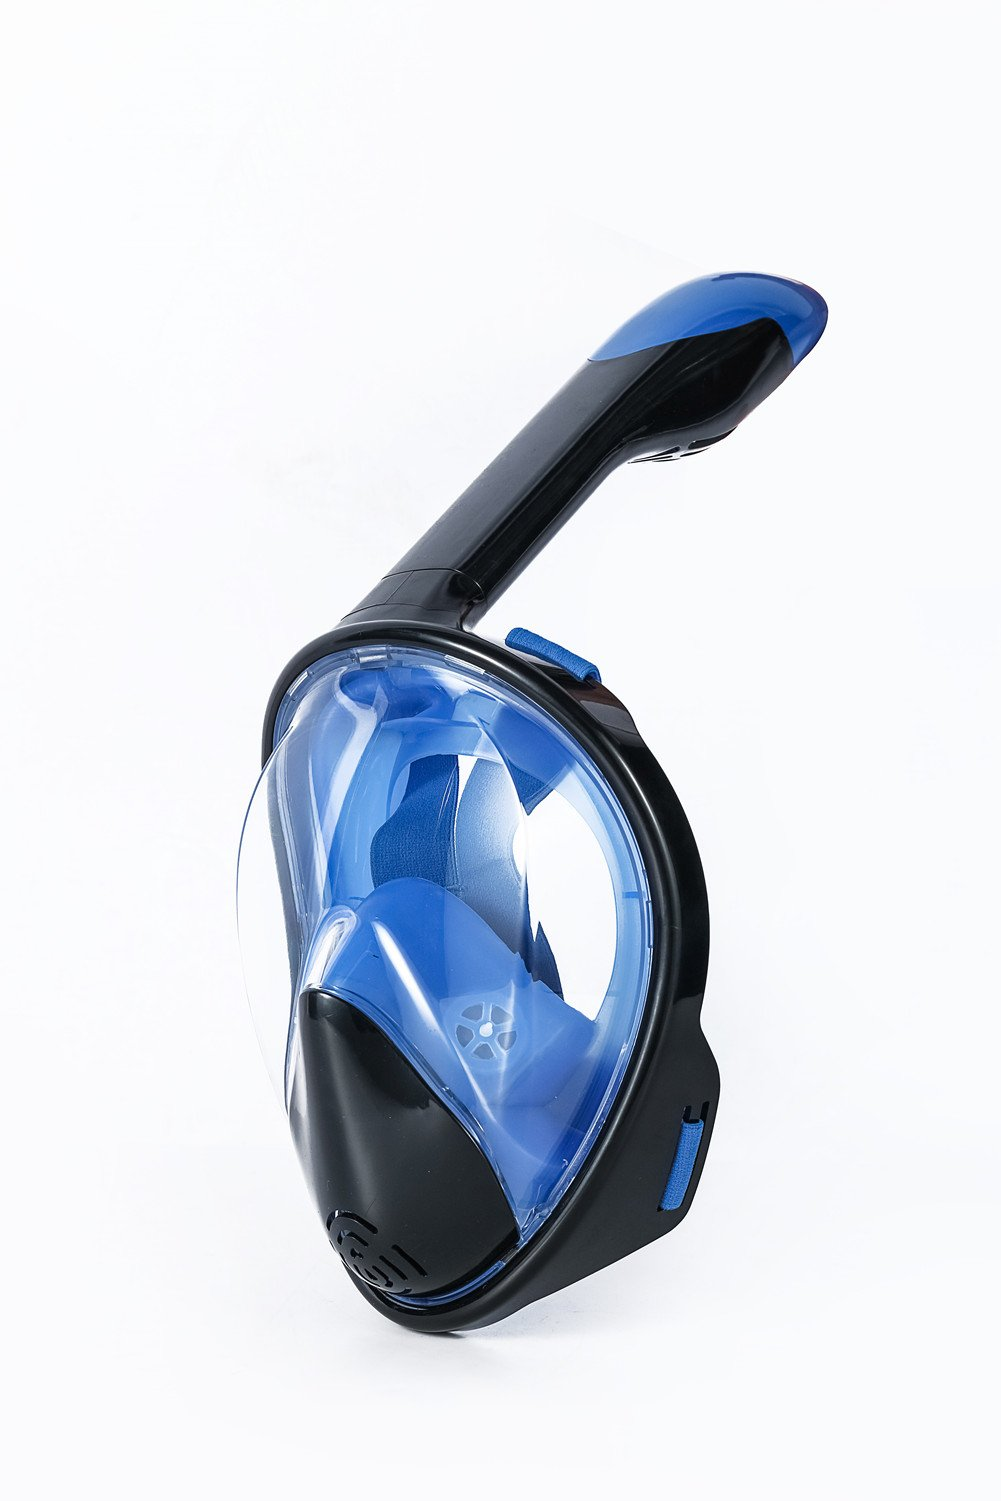 Snorkel mask Underwater Snorkel Set Full face breathing Diving Mask with Anti-fog and Anti-leak Technology fits for all swim newbies and diving lovers (blue and black, L-XL)